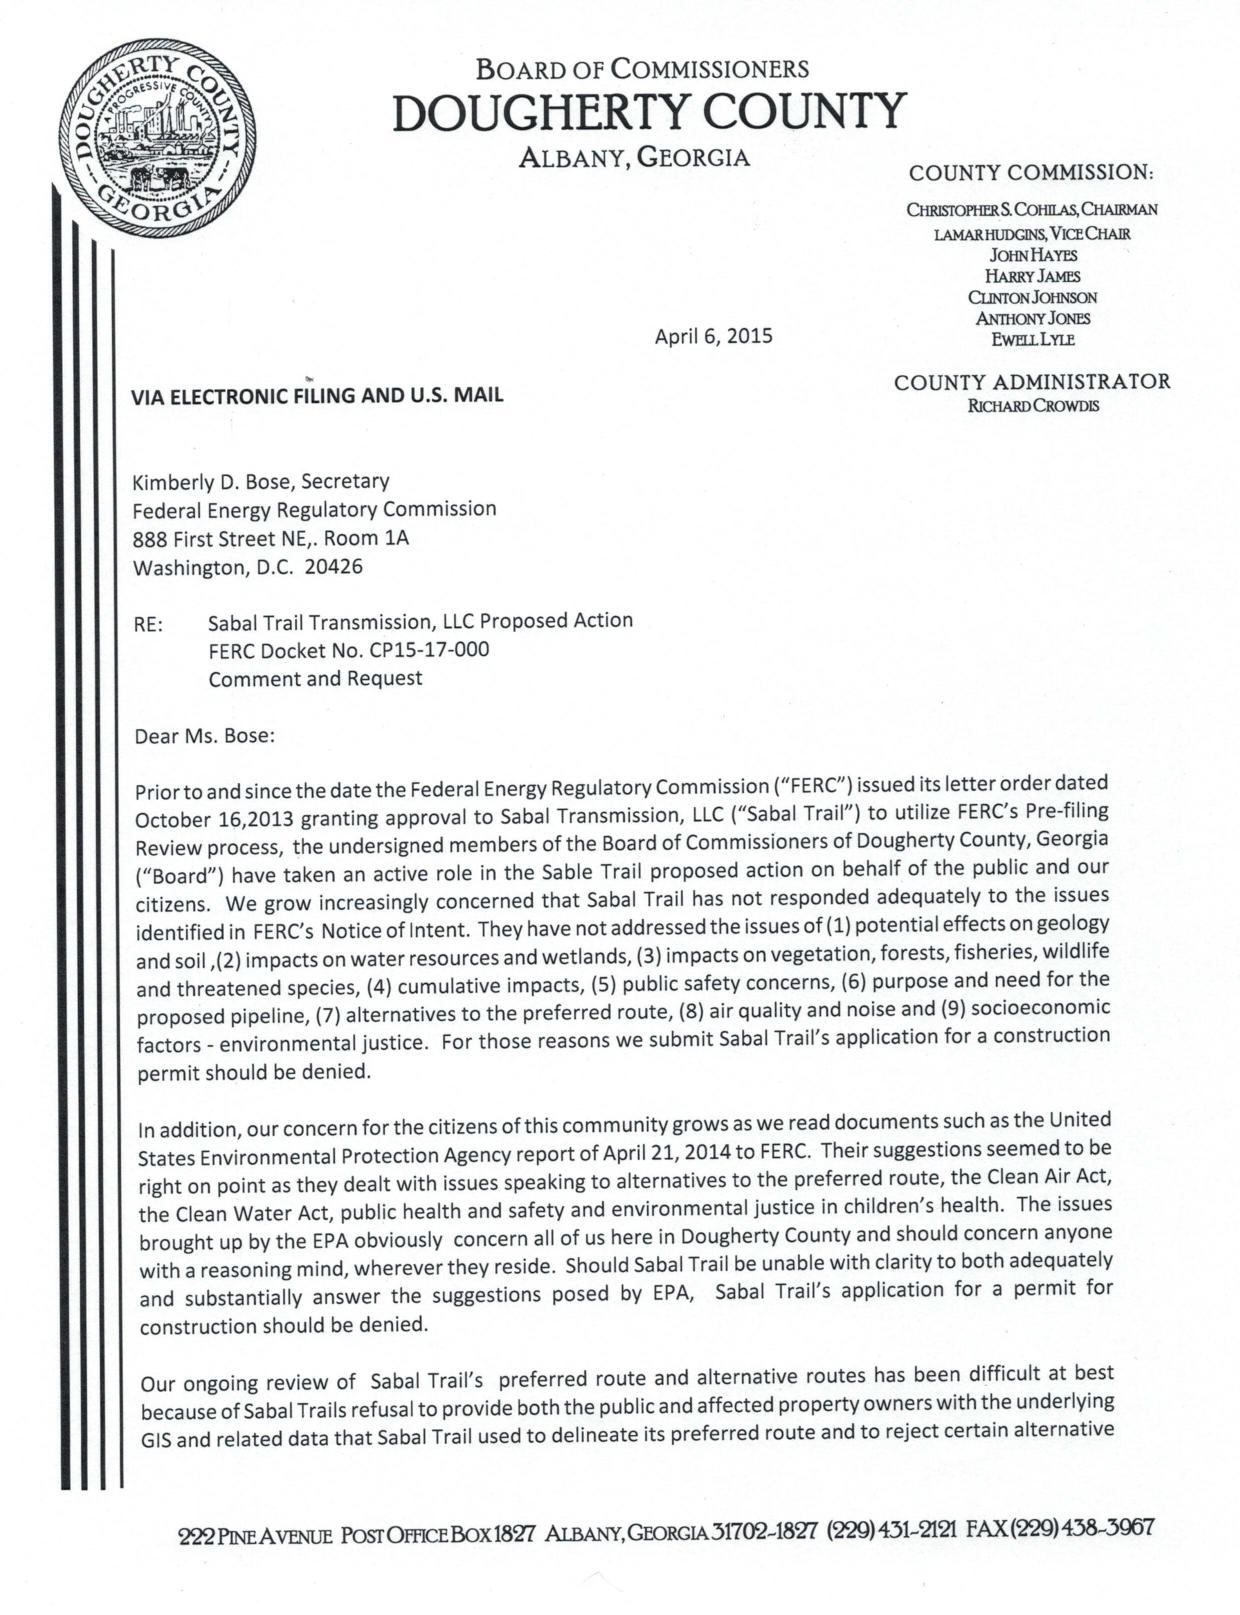 1240x1615 20150406-5144-30464227-001, in FERC still stonewalling Dougherty County Commission and landowners about Sabal Trail, by John S. Quarterman, for SpectraBusters.org, 6 April 2015